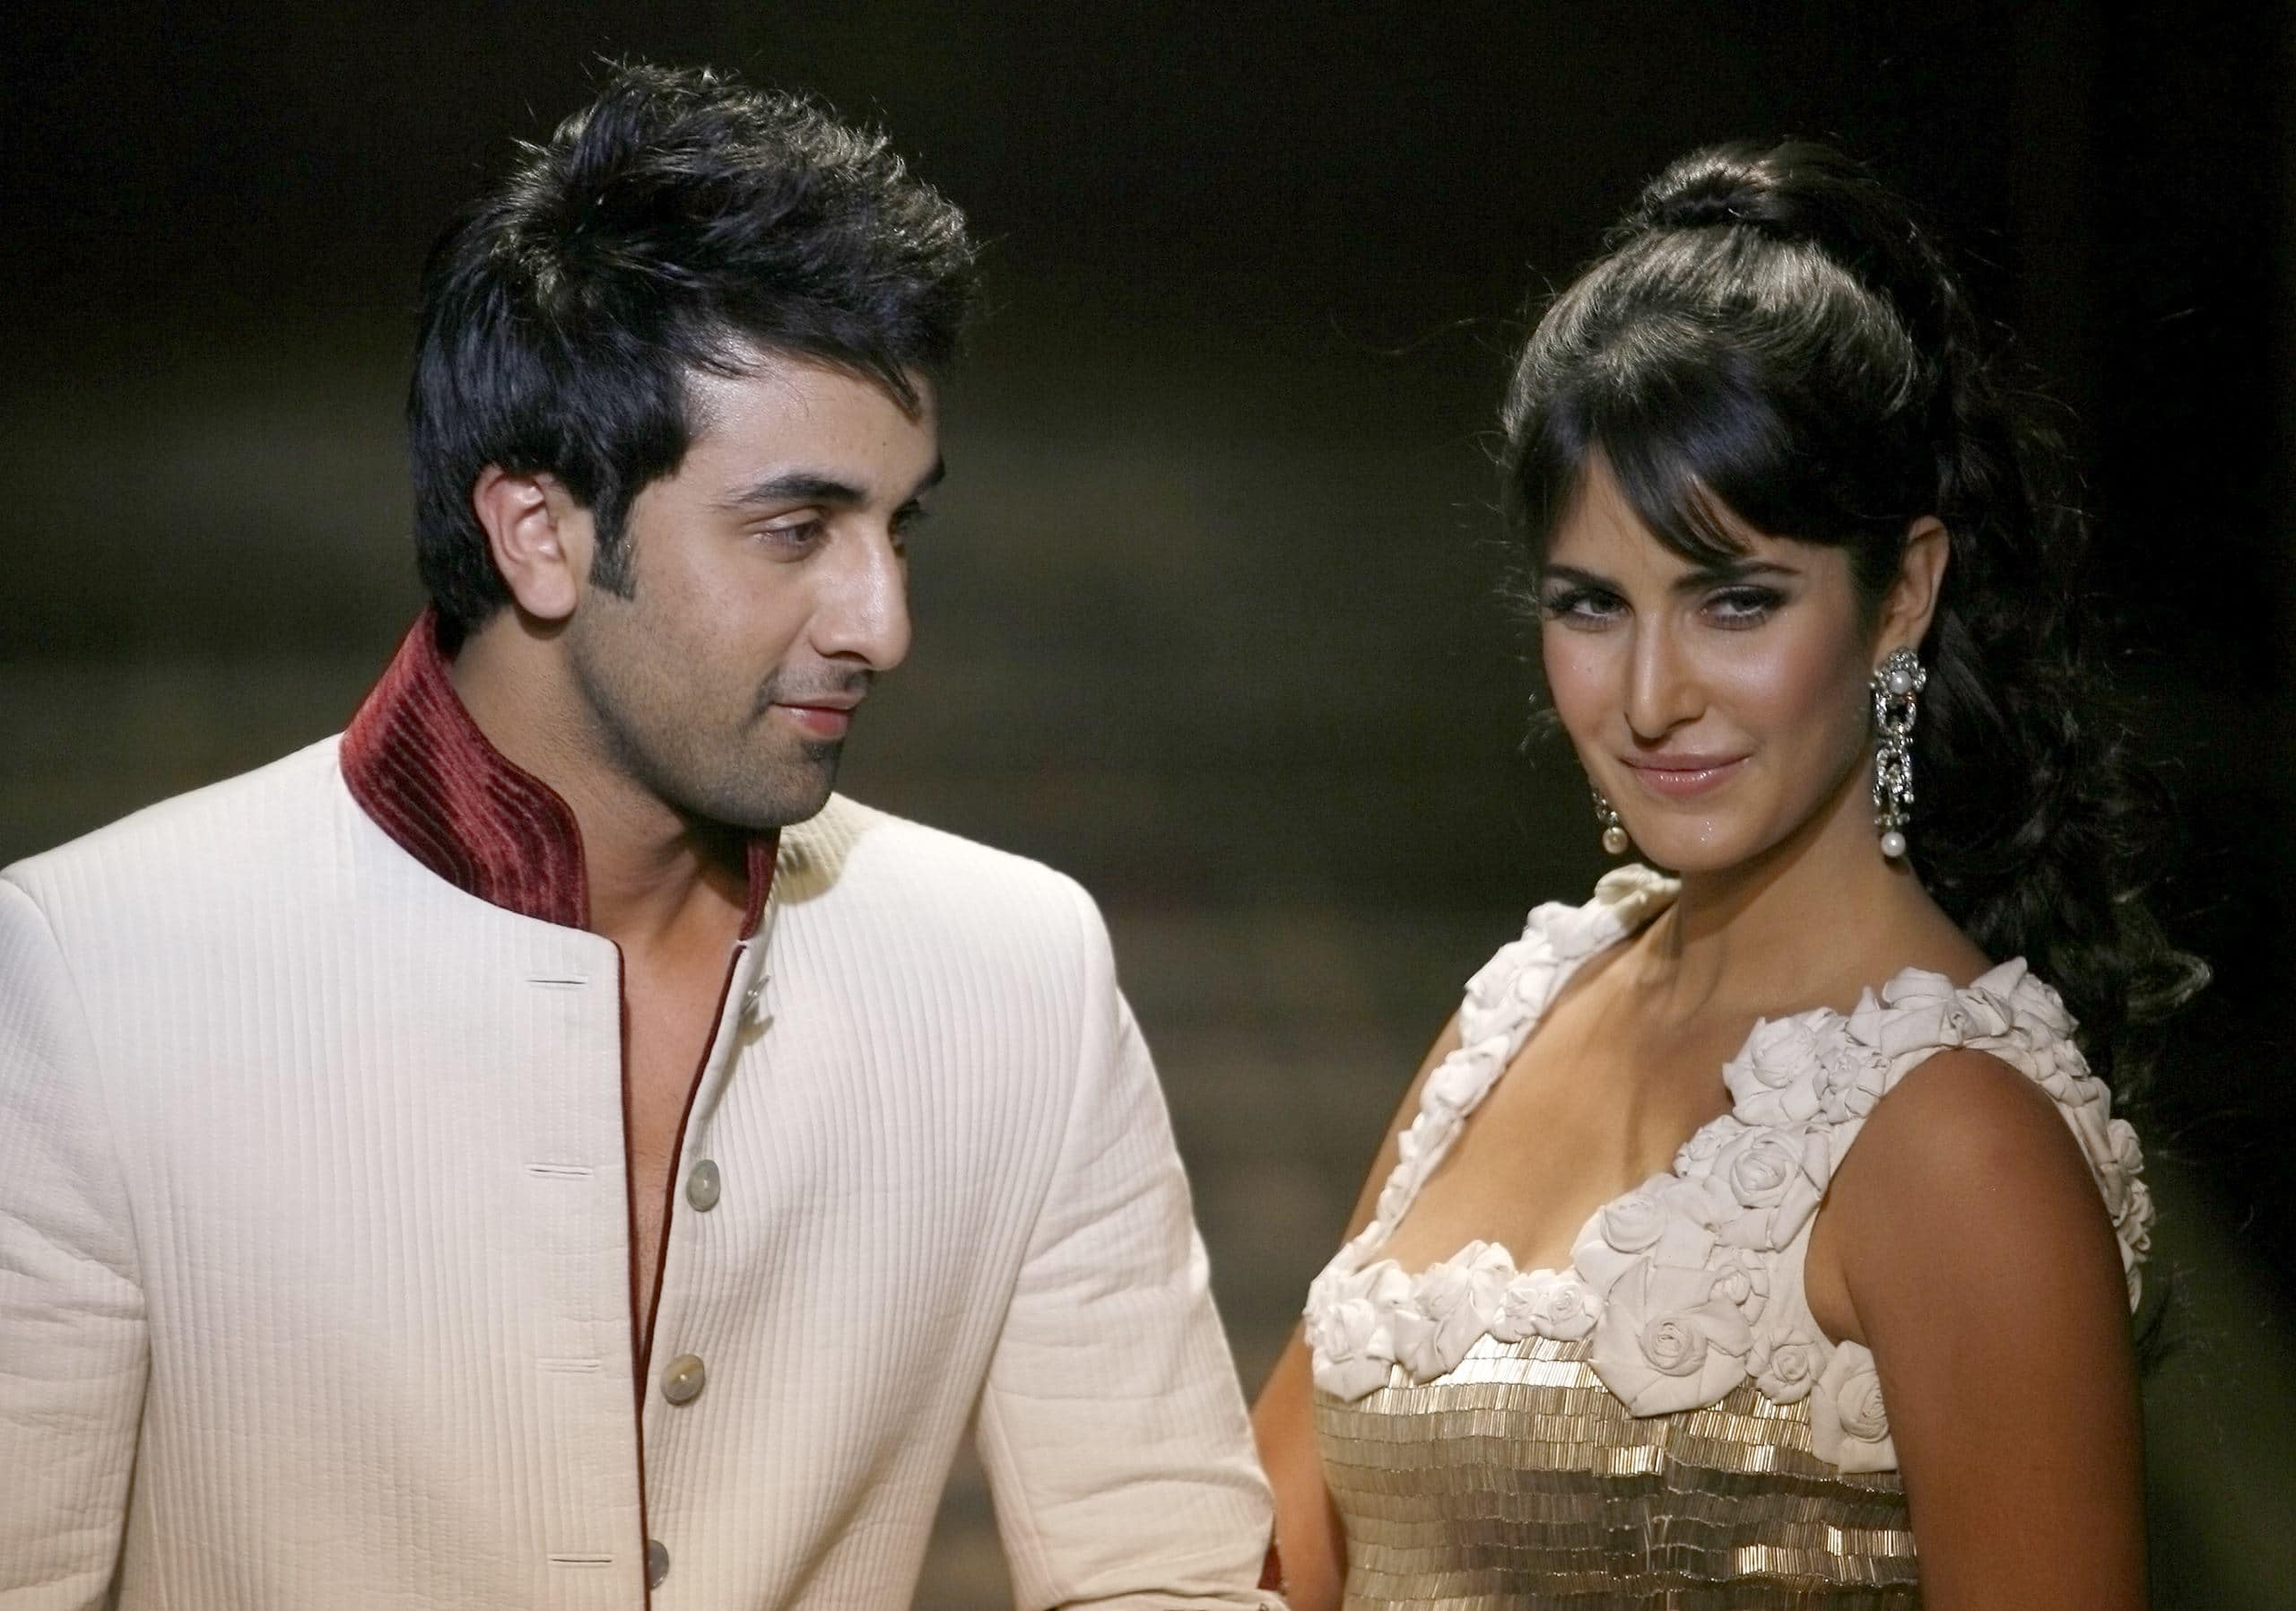 It Will Never Happen Again: Katrina Kaif On Working With Ranbir Kapoor In The Future